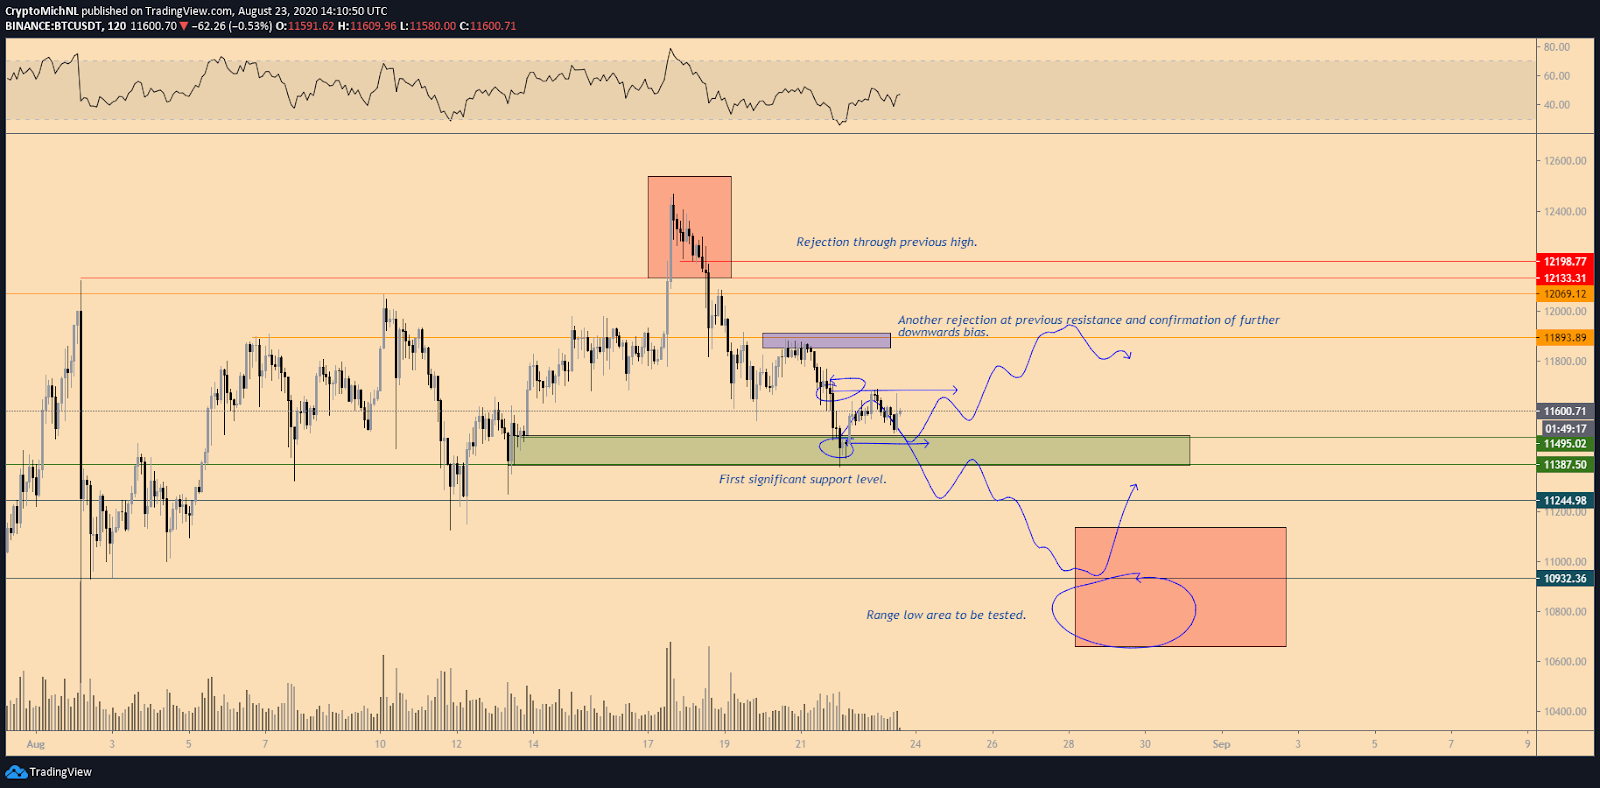 BTC/USD short-term analysis